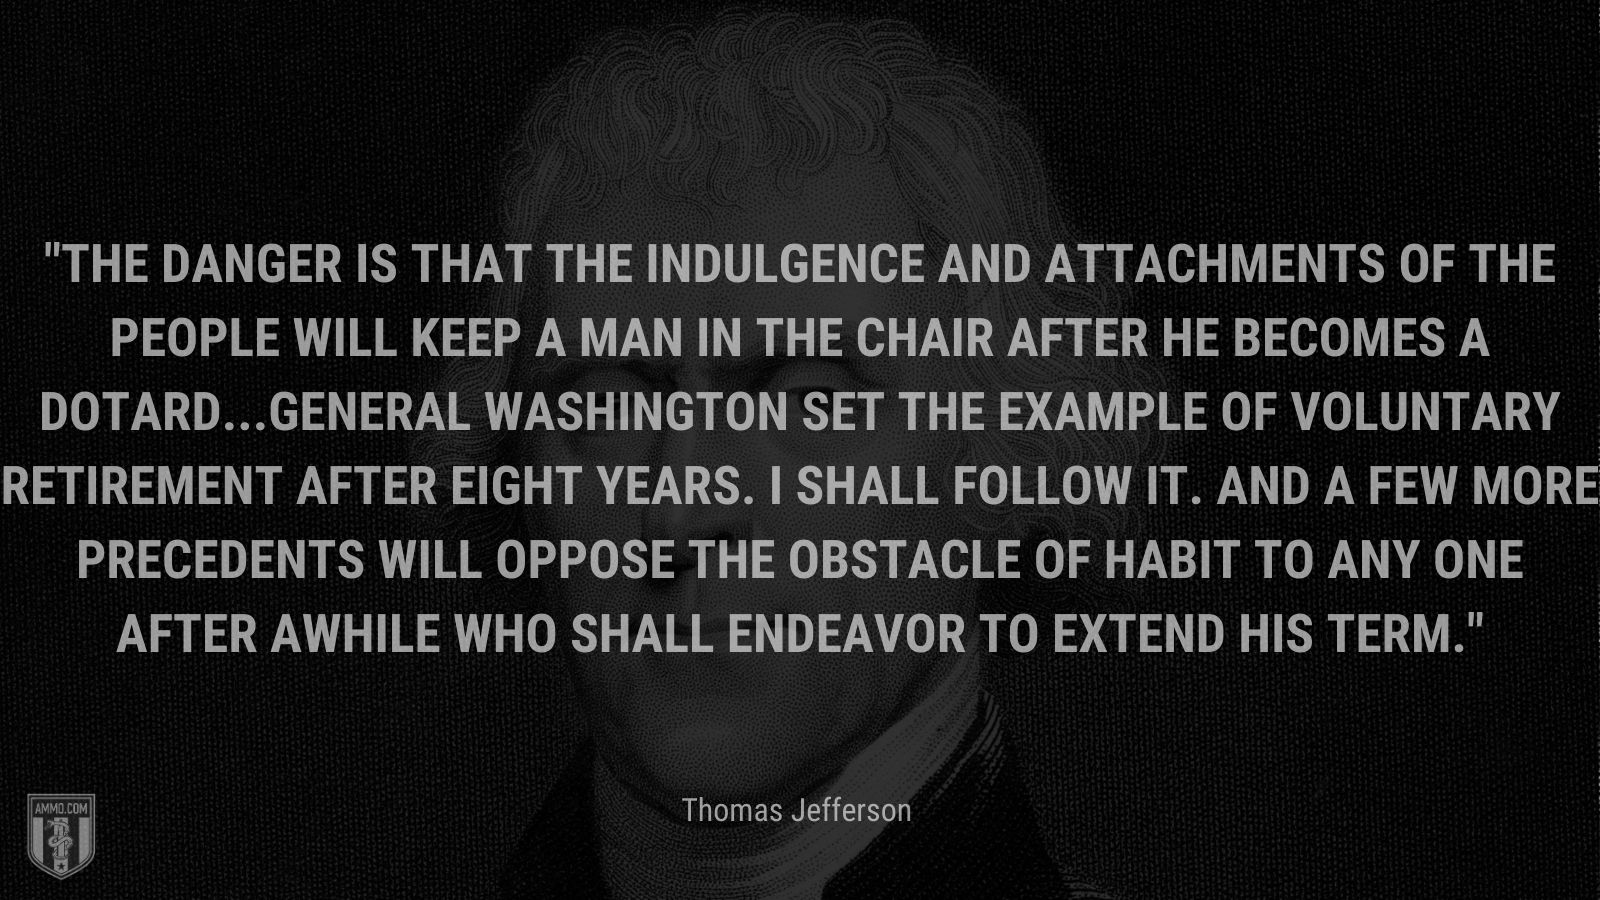 """""""The danger is that the indulgence and attachments of the people will keep a man in the chair after he becomes a dotard...General Washington set the example of voluntary retirement after eight years. I shall follow it. And a few more precedents will oppose the obstacle of habit to any one after awhile who shall endeavor to extend his term."""" - Thomas Jefferson"""